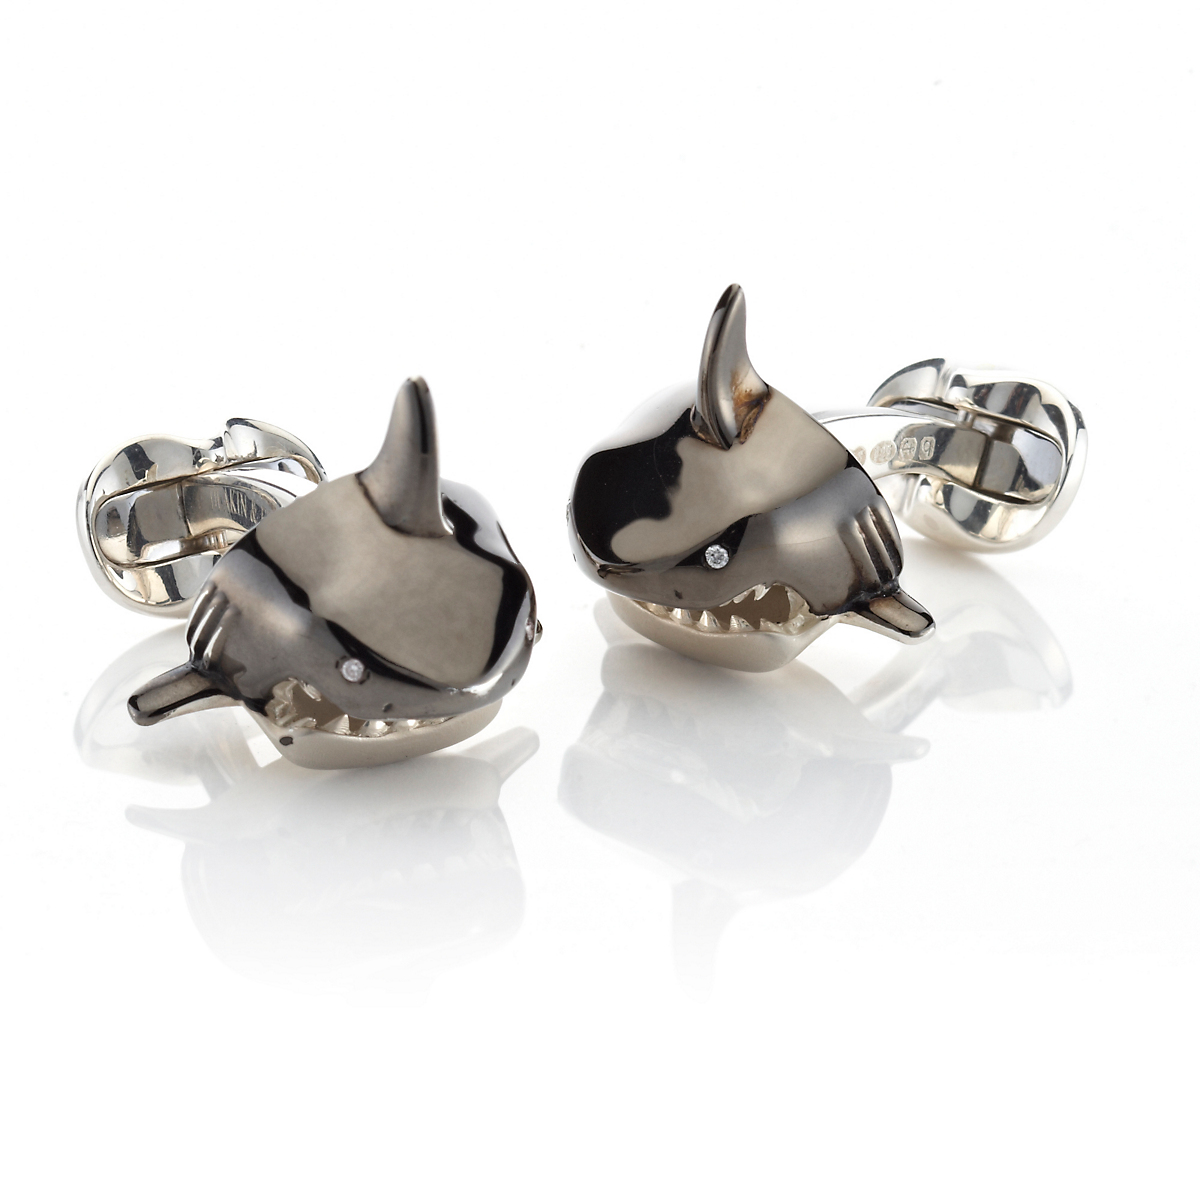 Shark Sterling Silver, Enamel And Diamond Cufflinks Deakin & Francis